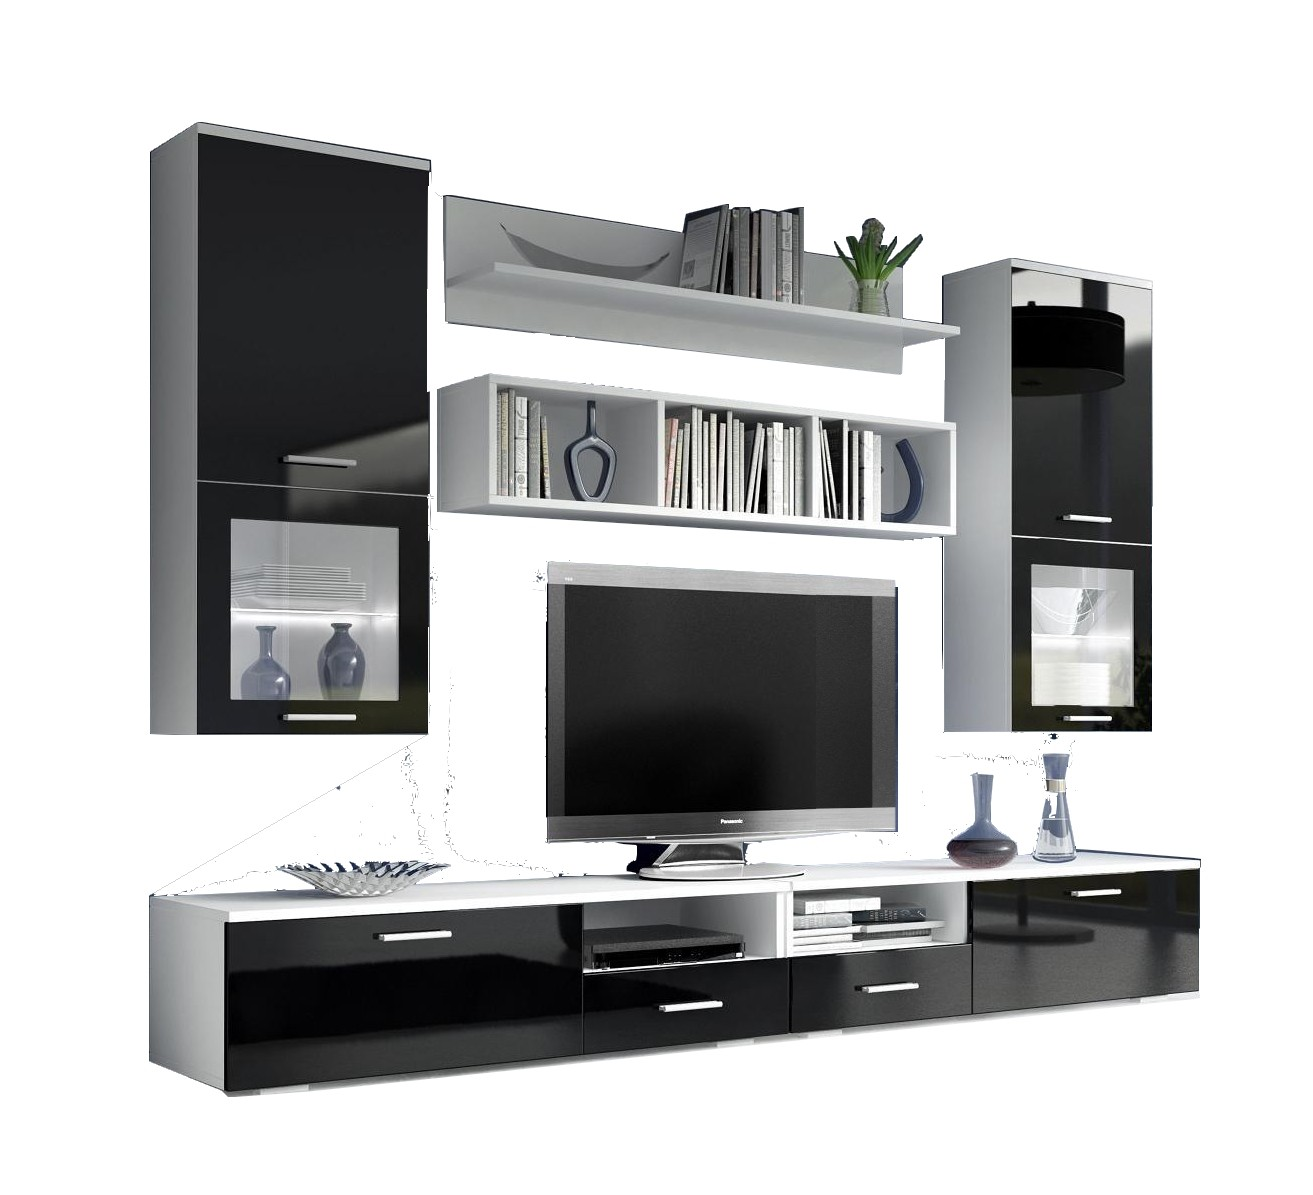 meuble de tele noir id es de d coration int rieure. Black Bedroom Furniture Sets. Home Design Ideas